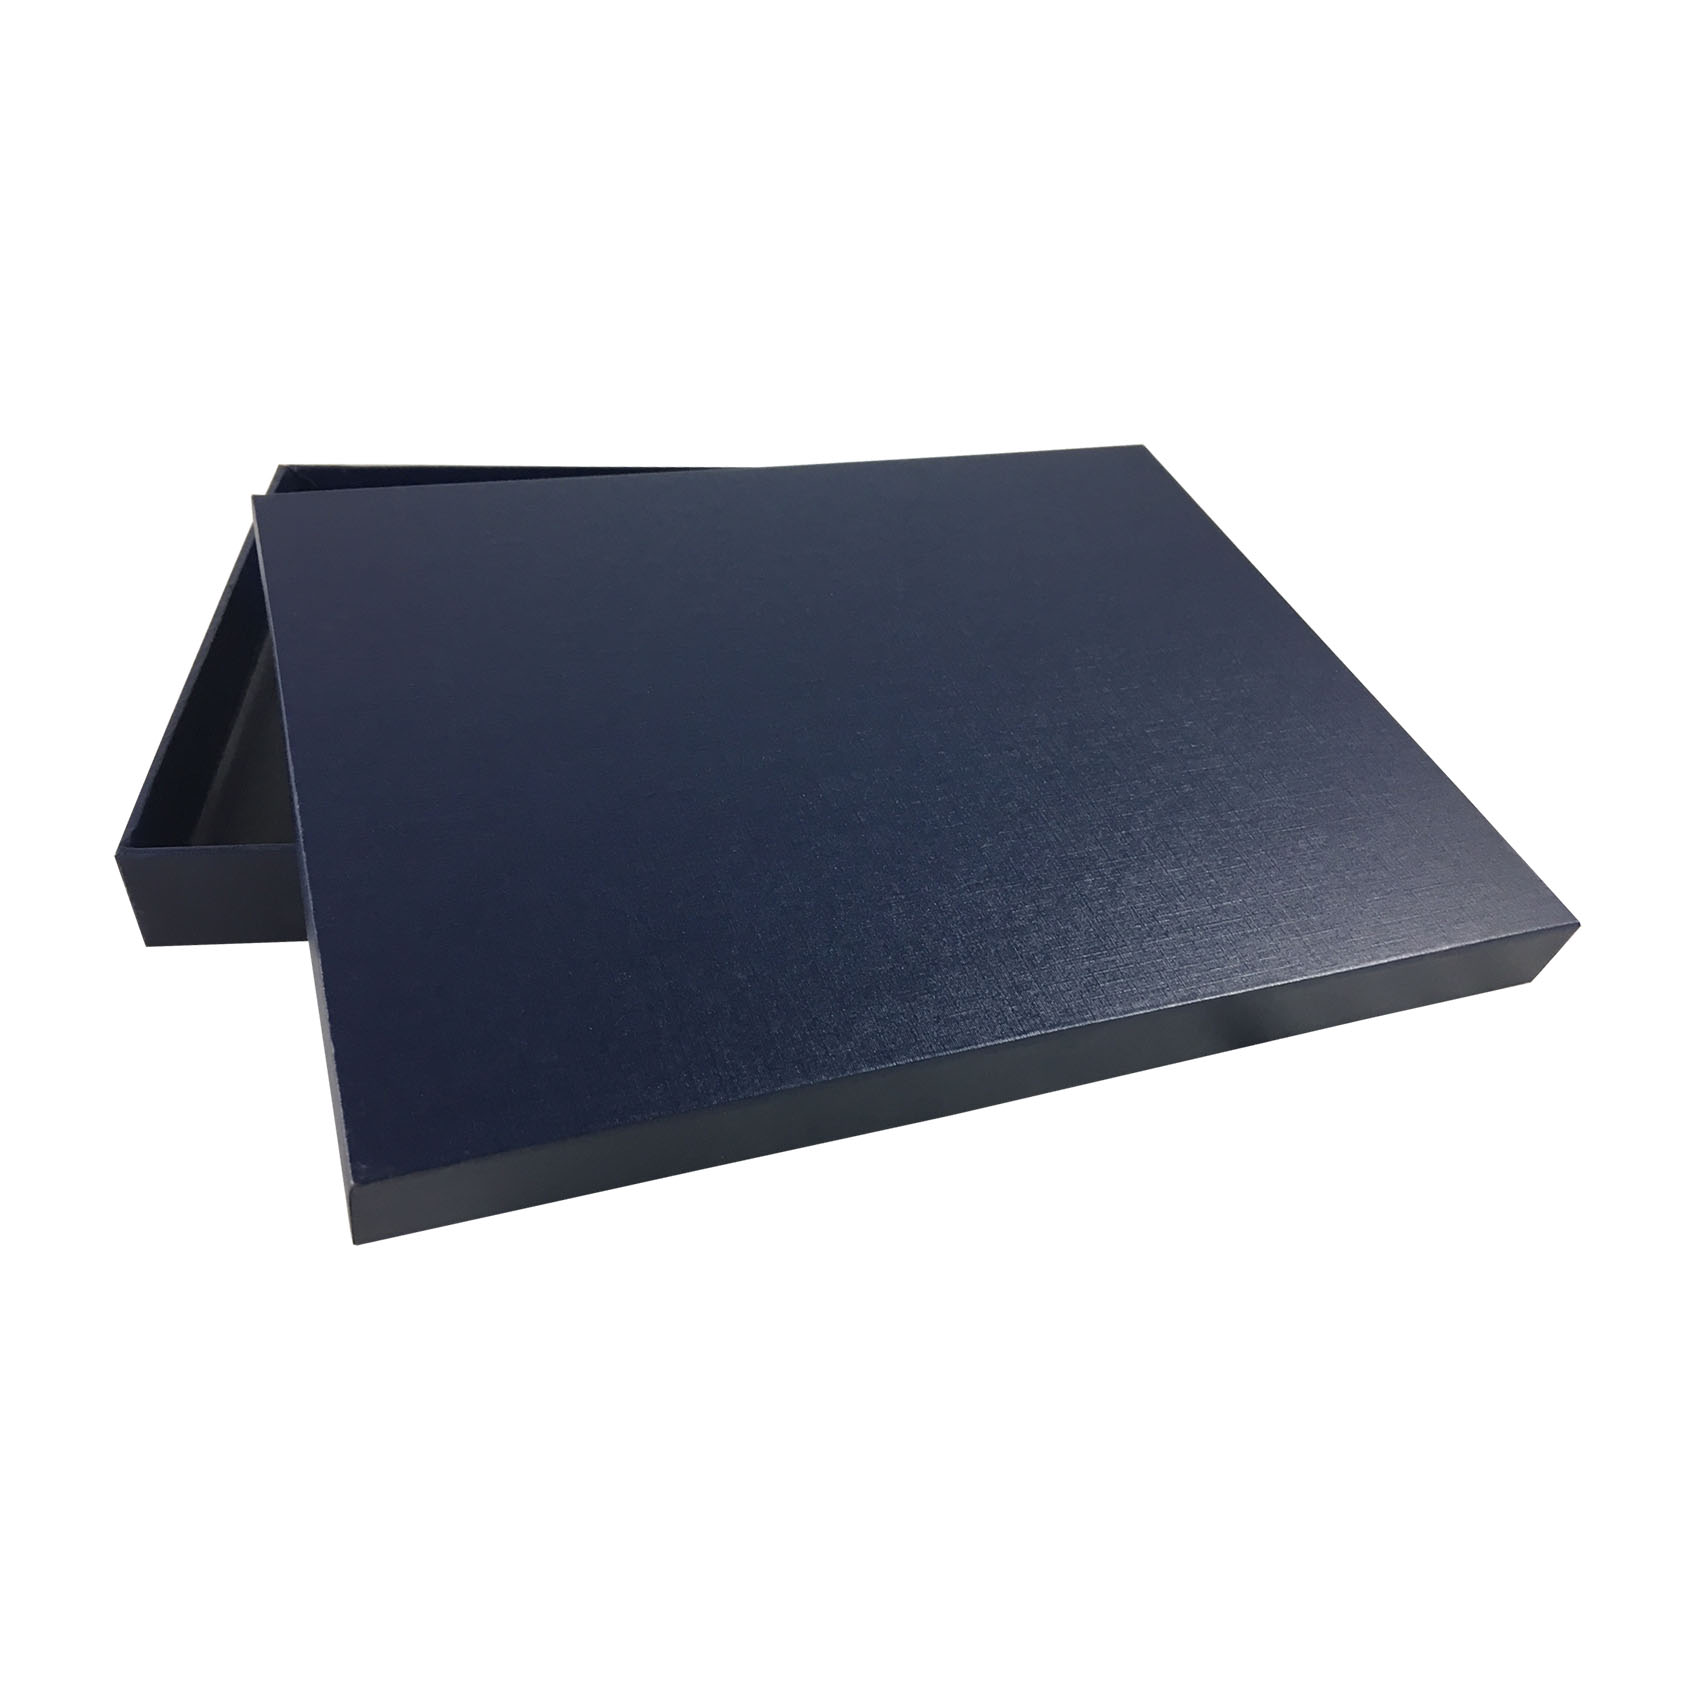 luxury cardboard box in navy blue